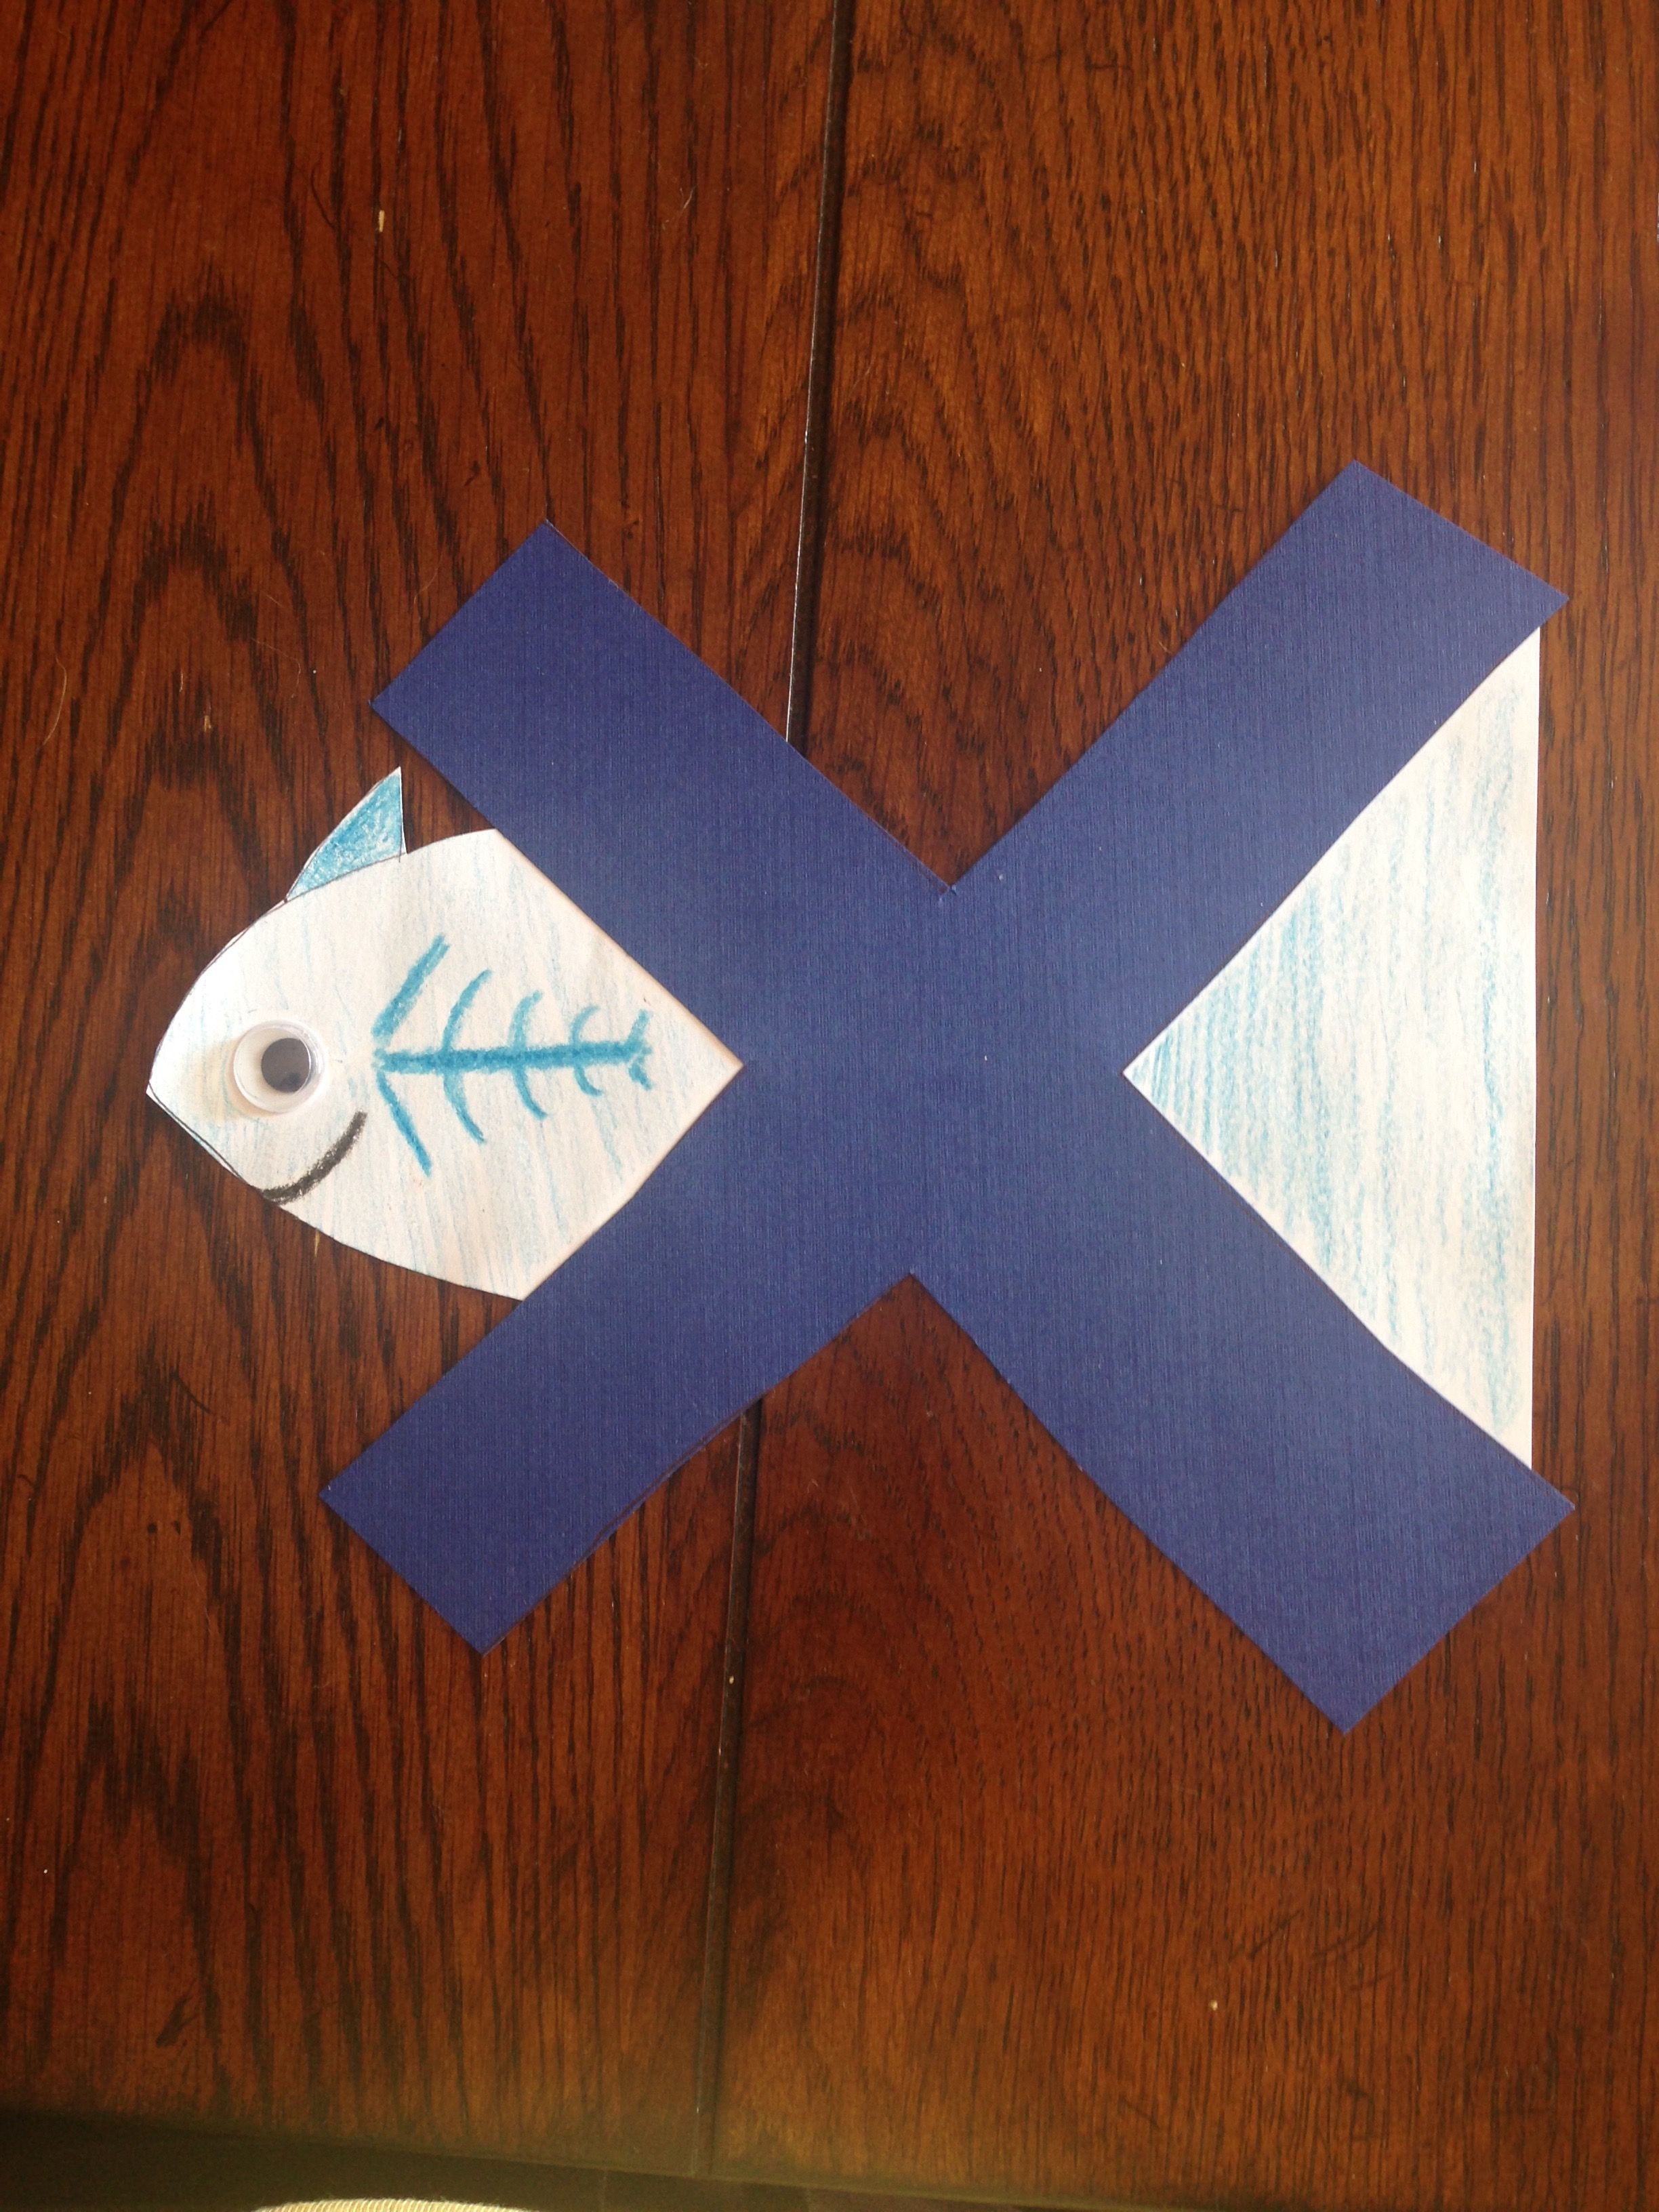 X Is For X Ray Fish X Was Another Tricky One But I Found This One To Be The Most Simple To